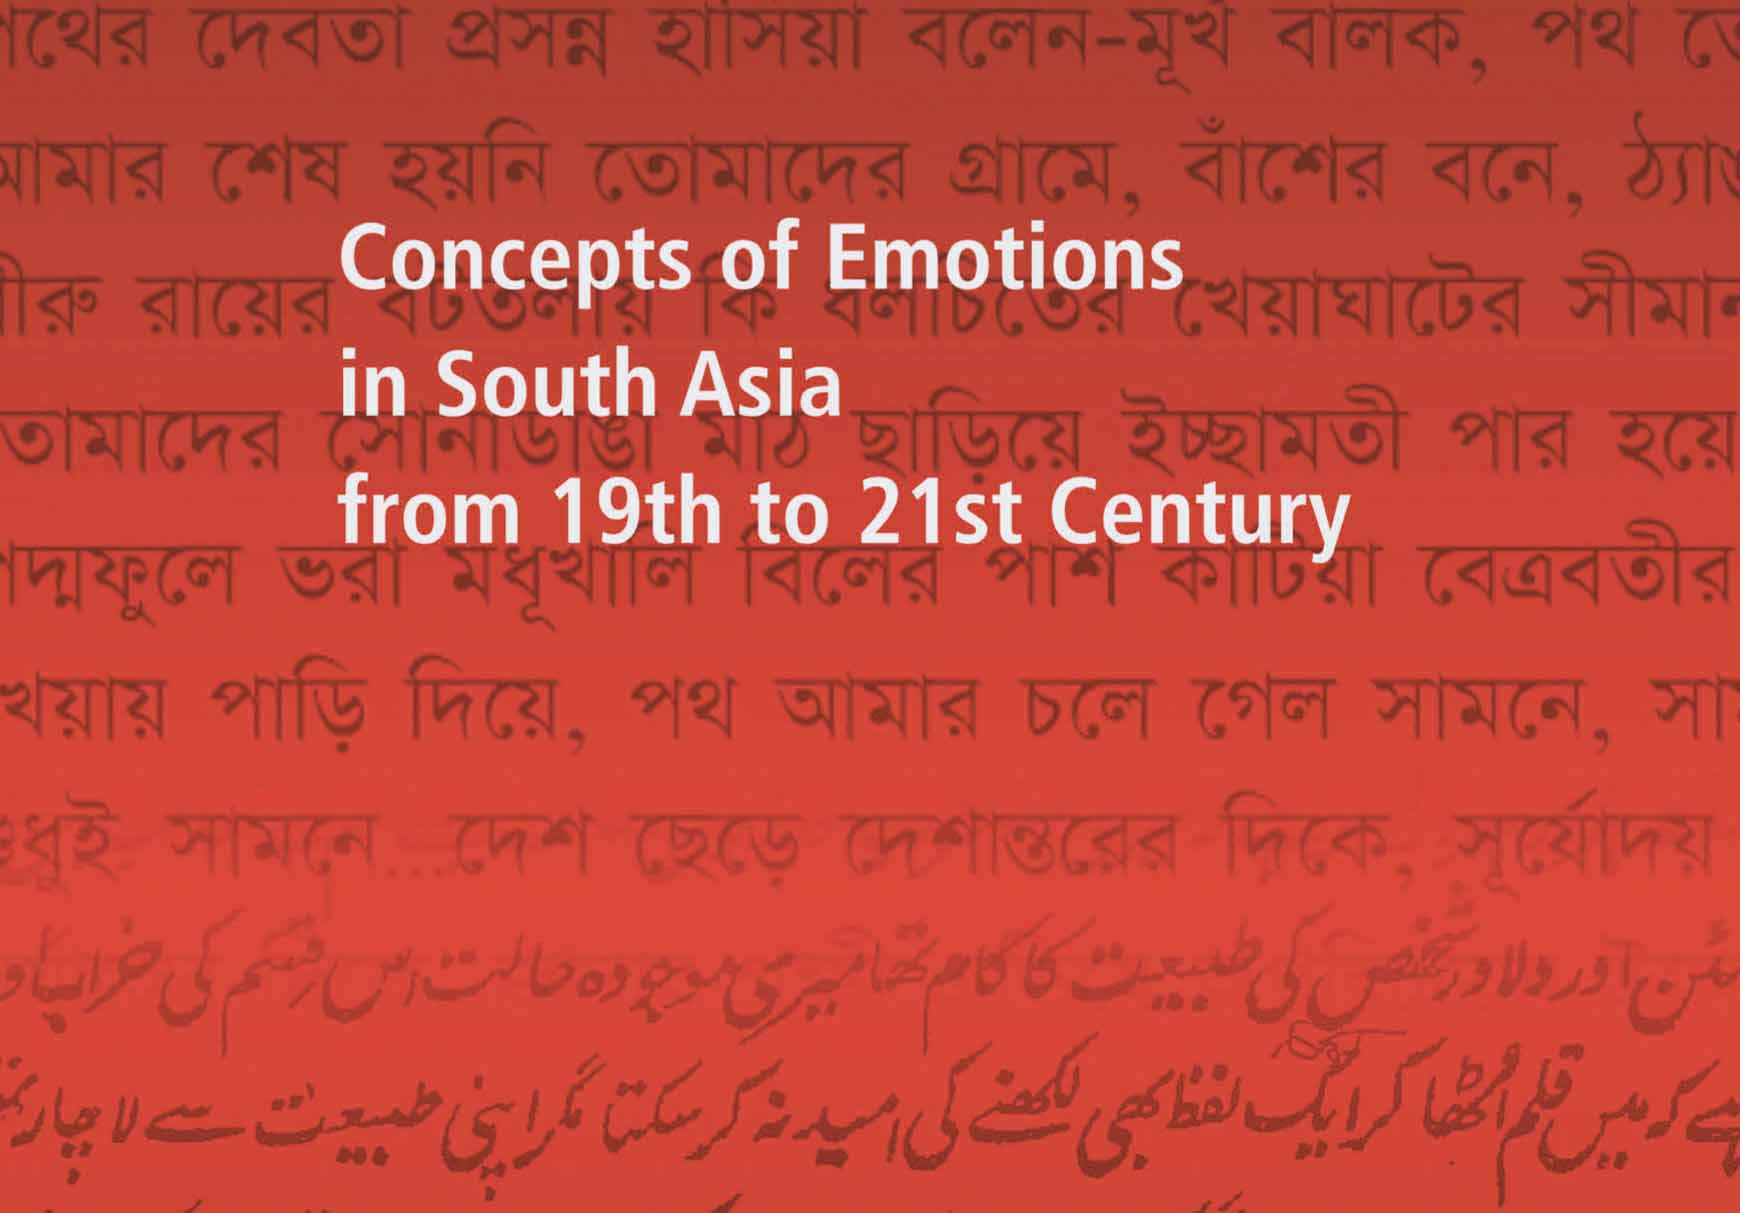 Concepts of Emotions in South Asia from 19th to 21st Century